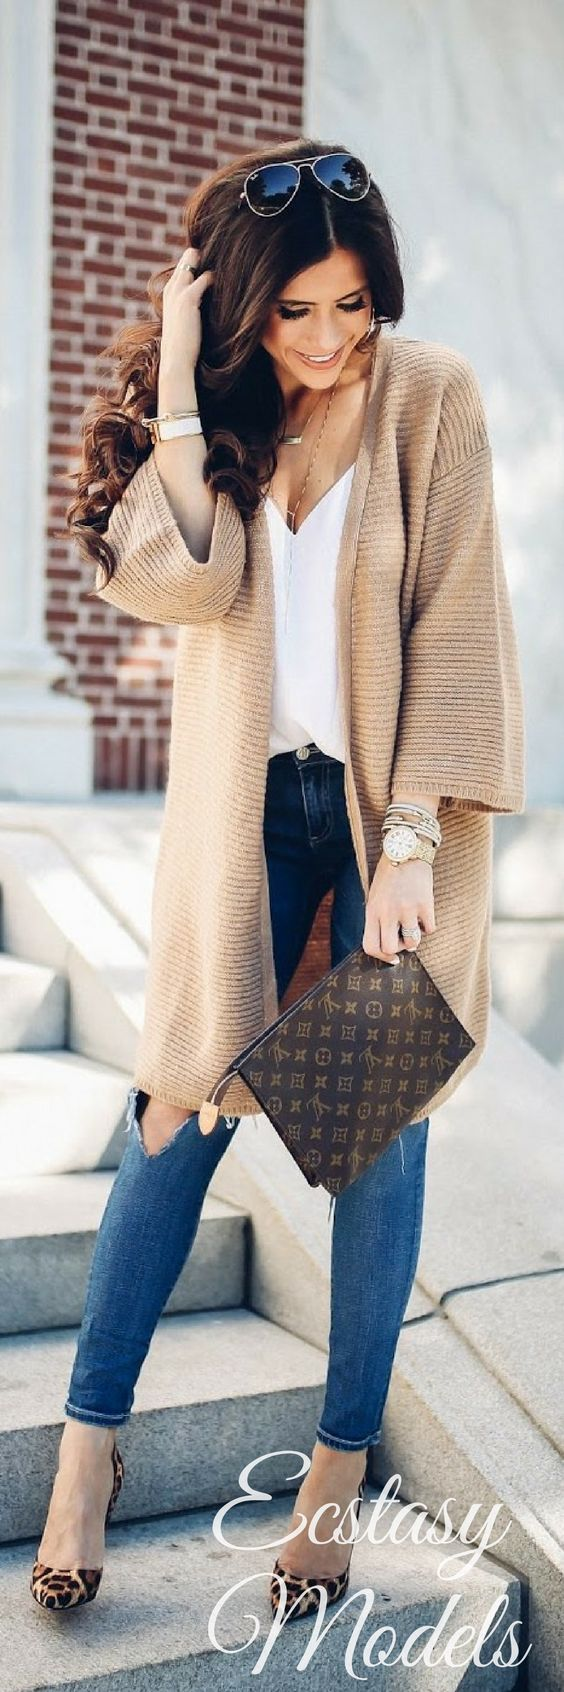 MIXING COMFORT WITH EDGE.. // Fashion Look by The Sweetest Thing